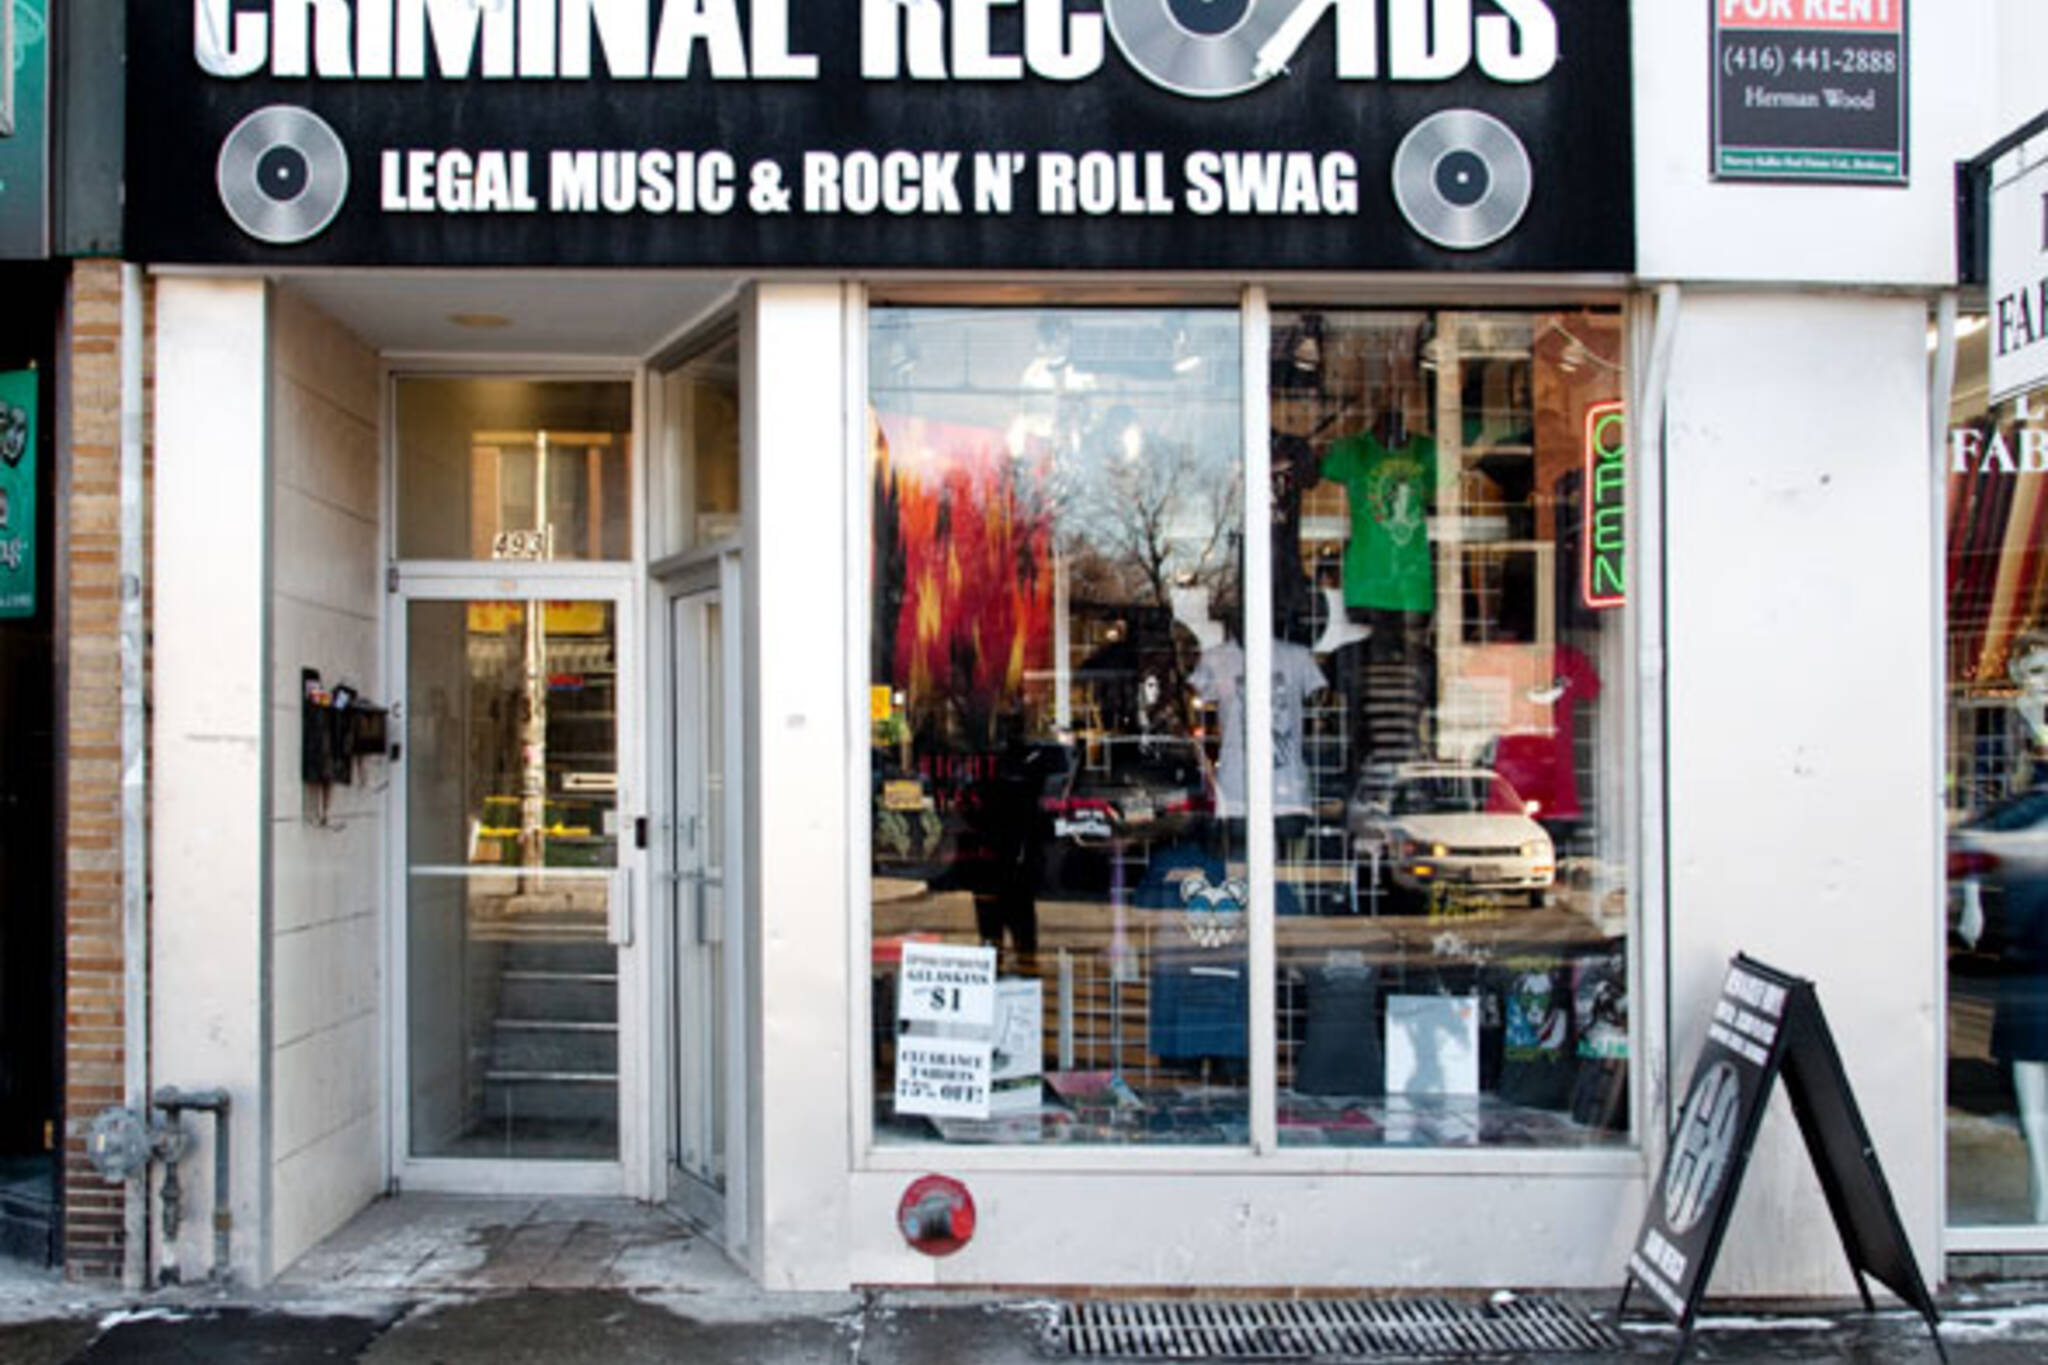 Criminal Records Window